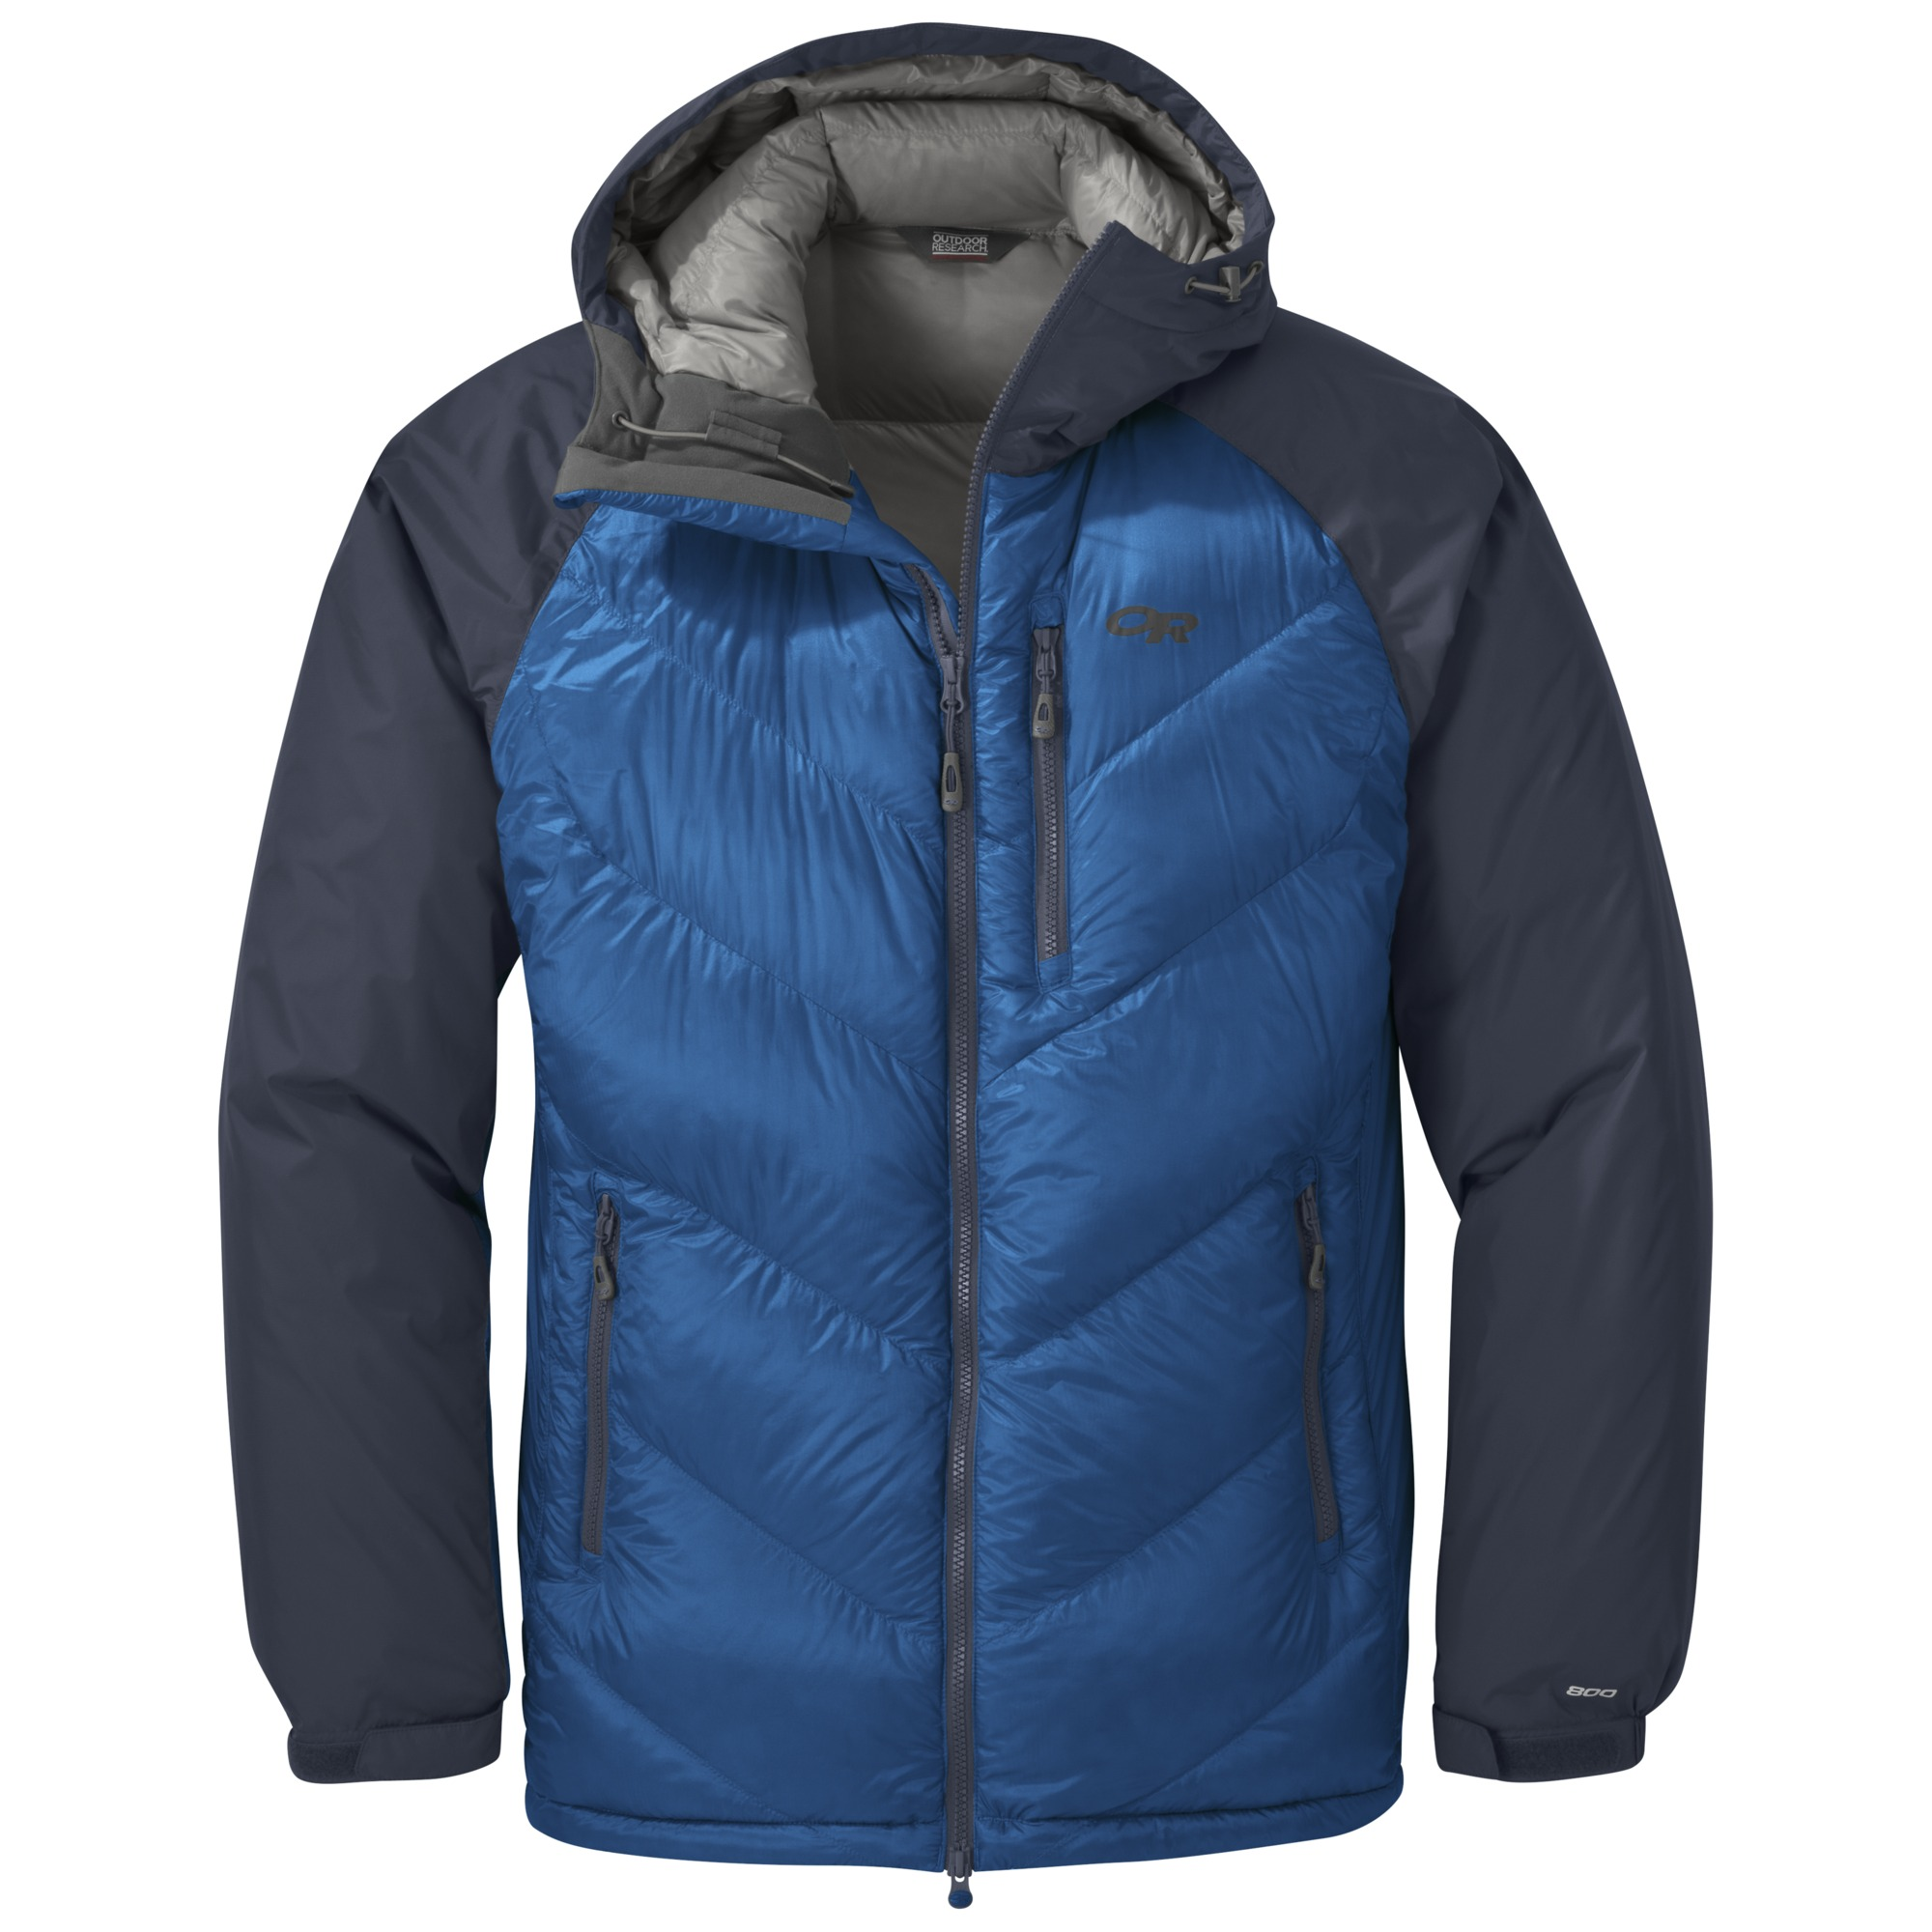 6d822f5ce Men's Alpine Down Hooded Jacket - cobalt/naval blue | Outdoor Research